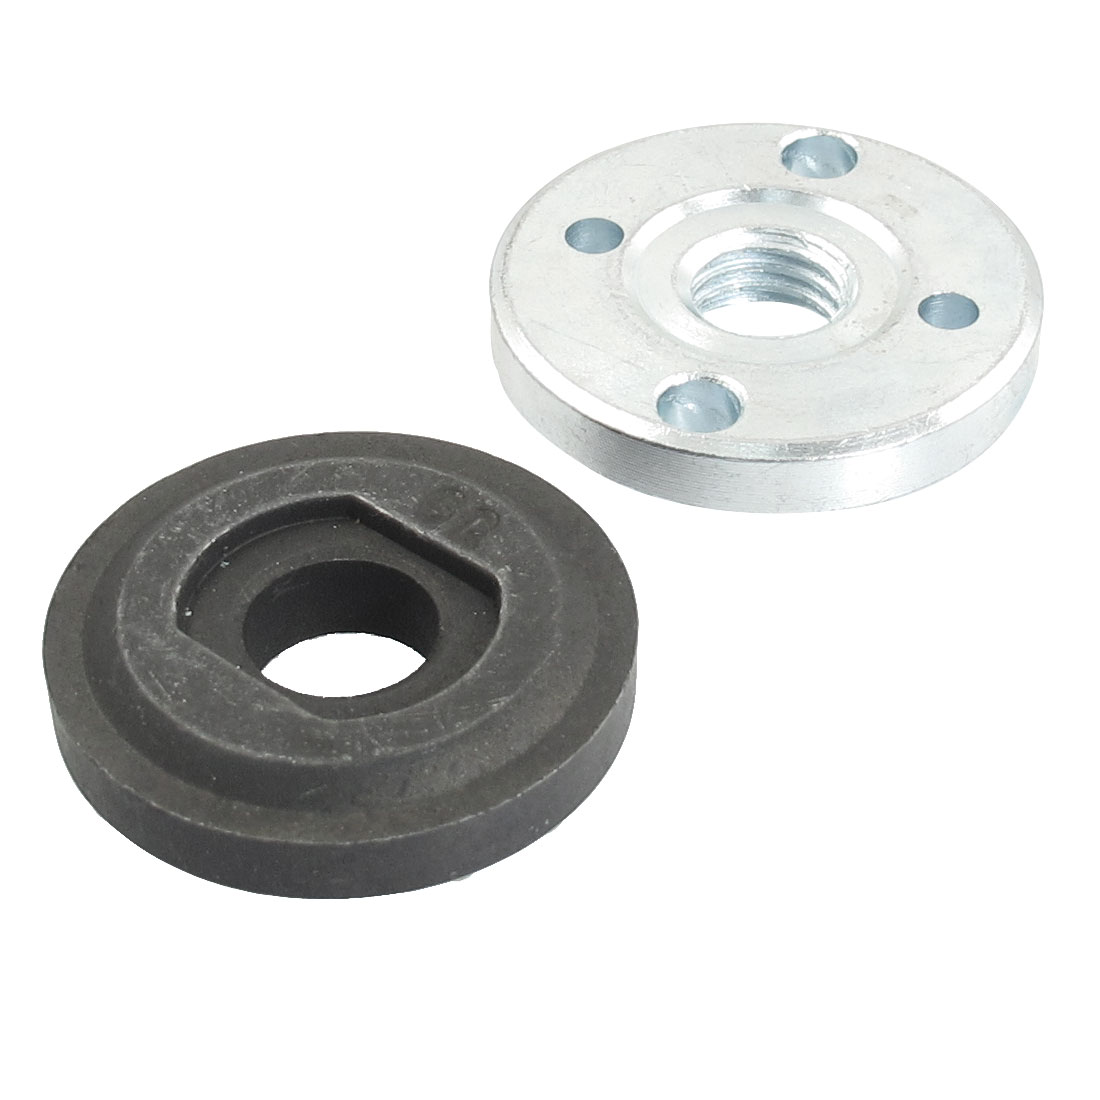 UXCELL 2 Pcs/lot Round Clamp Inner Outer Flange 12mm 14mm Angle Grinder Spare Part For GWS20-180